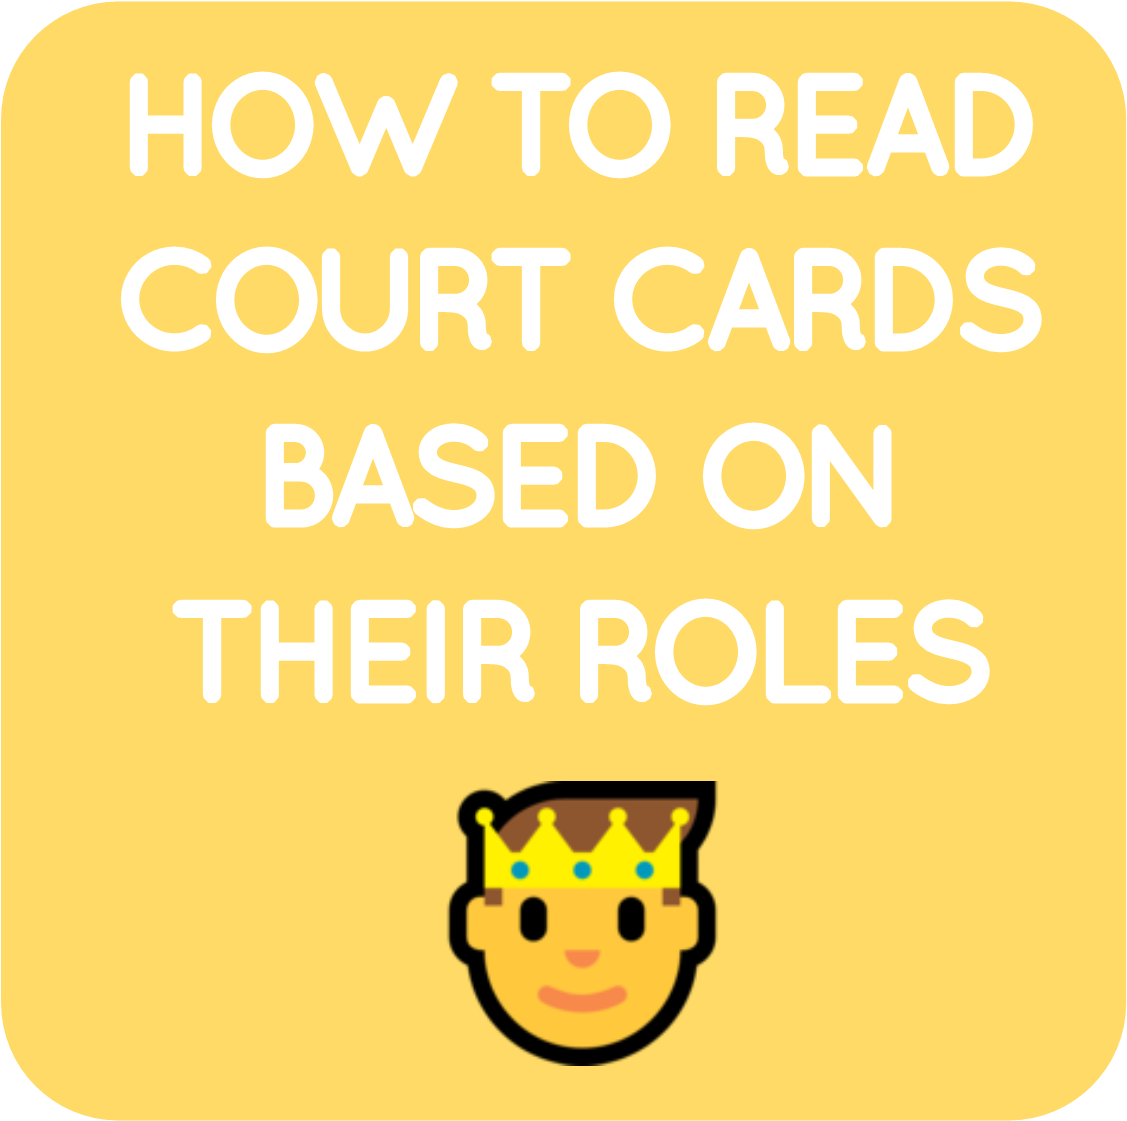 06-court cards based on their roles.png